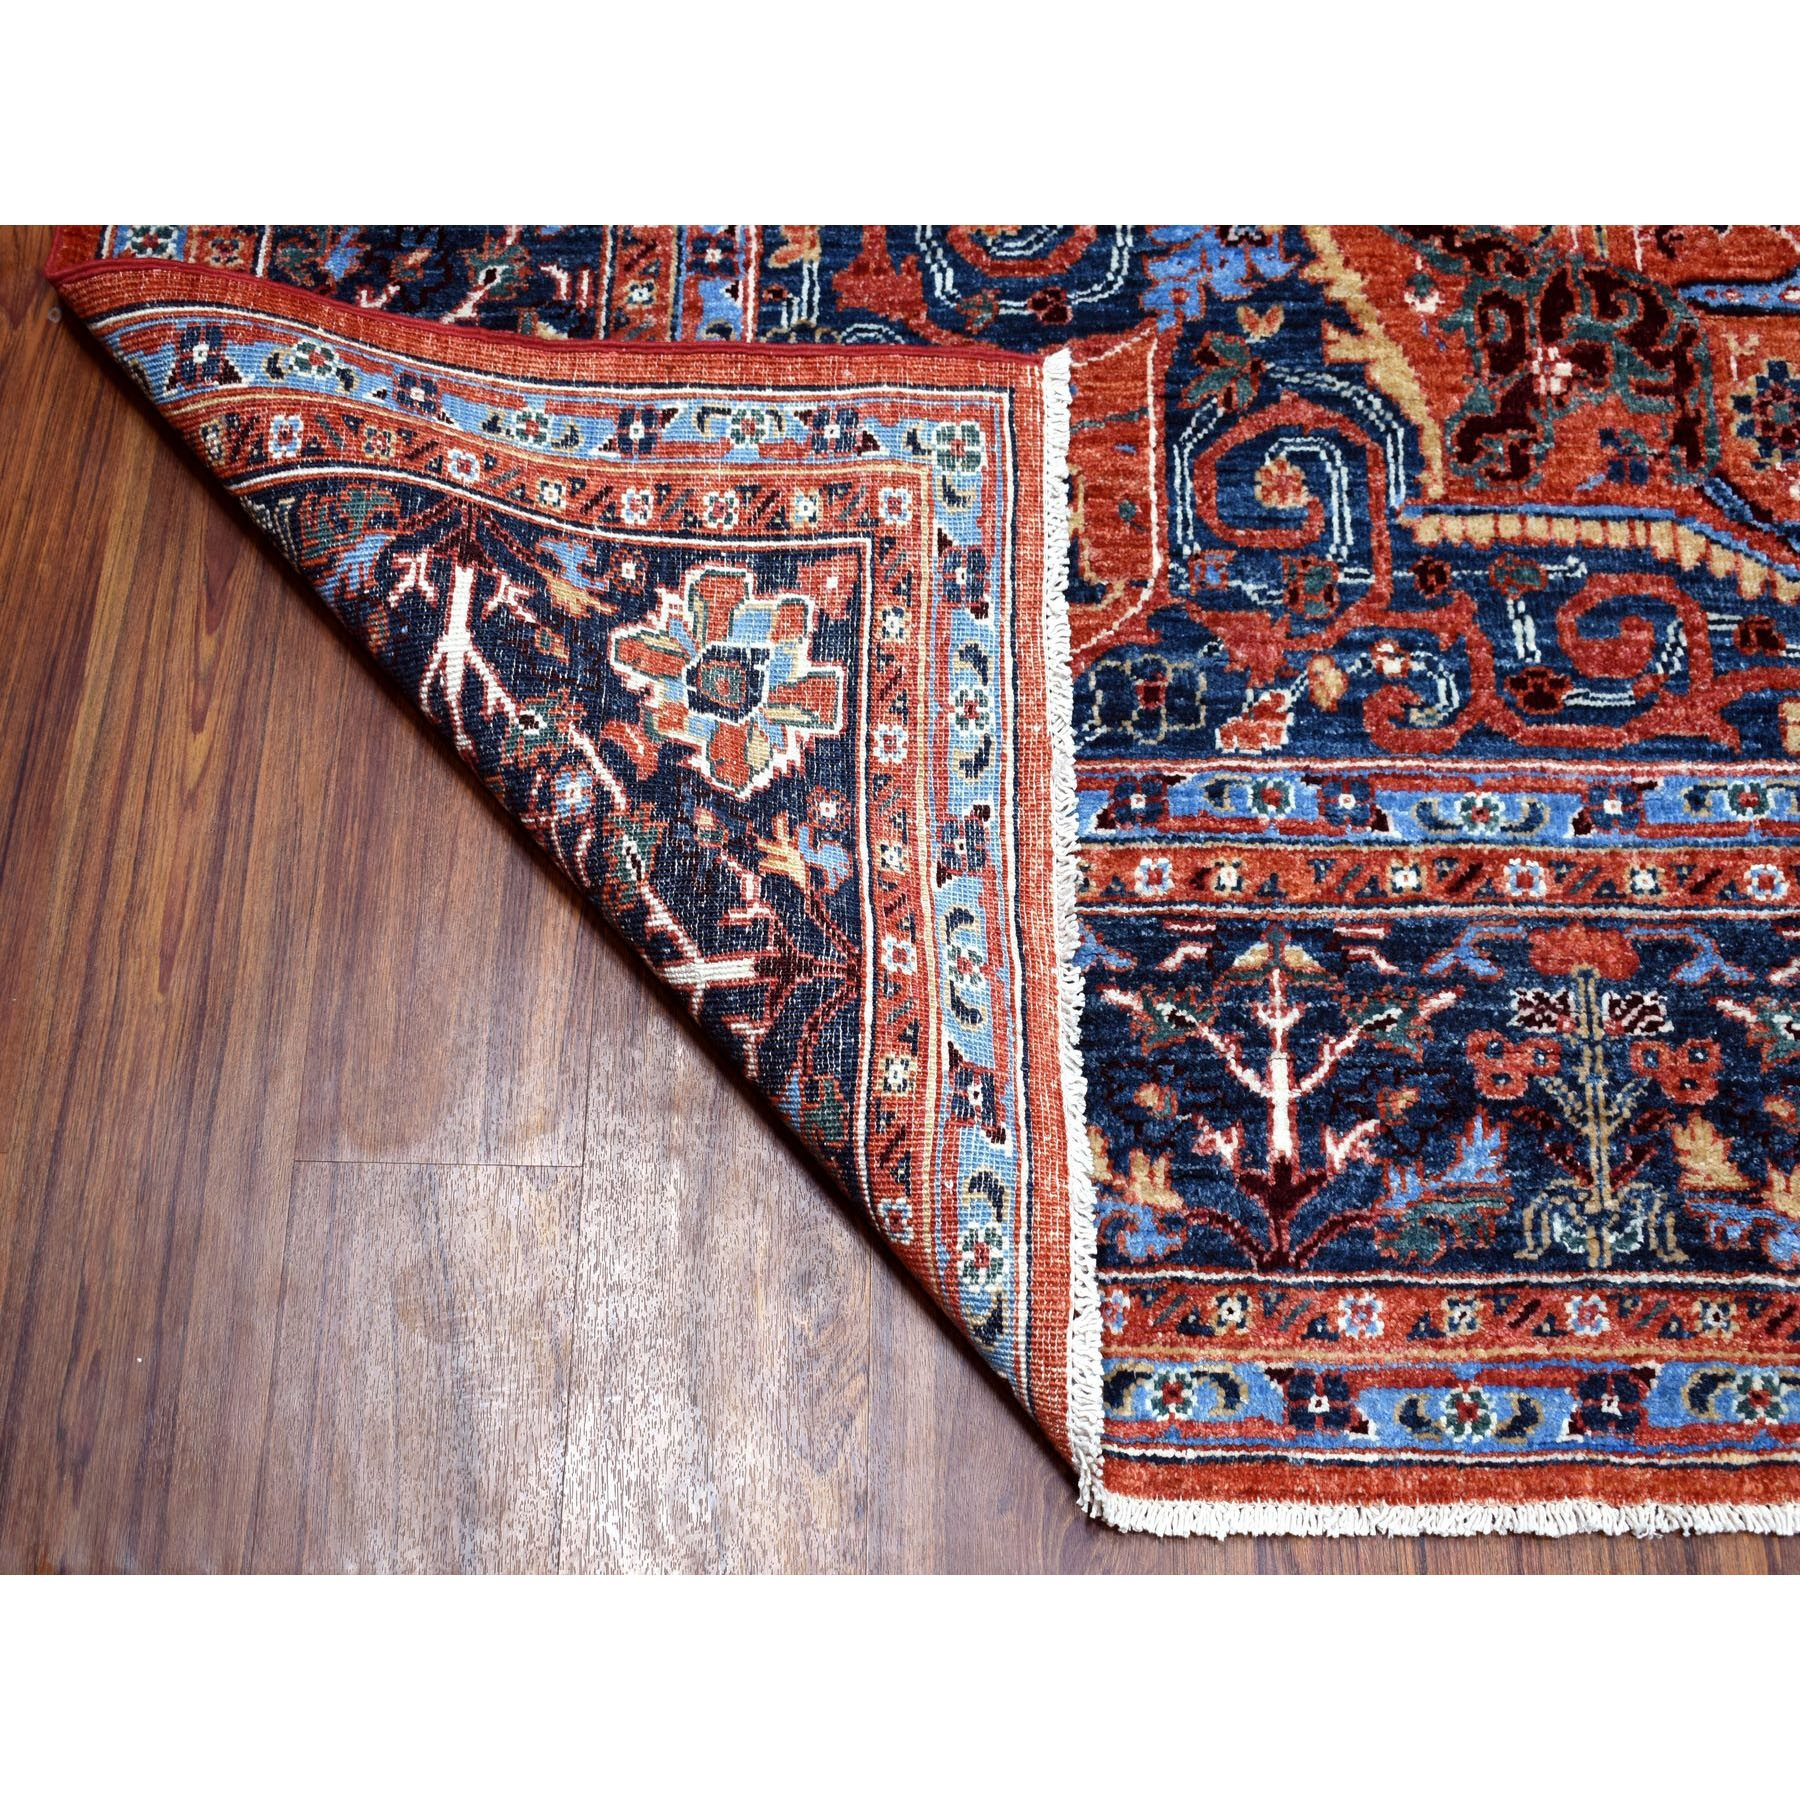 8'x10' Peshawar With Sarouk Fereghan Design Hand Woven Pure Wool Oriental Rug